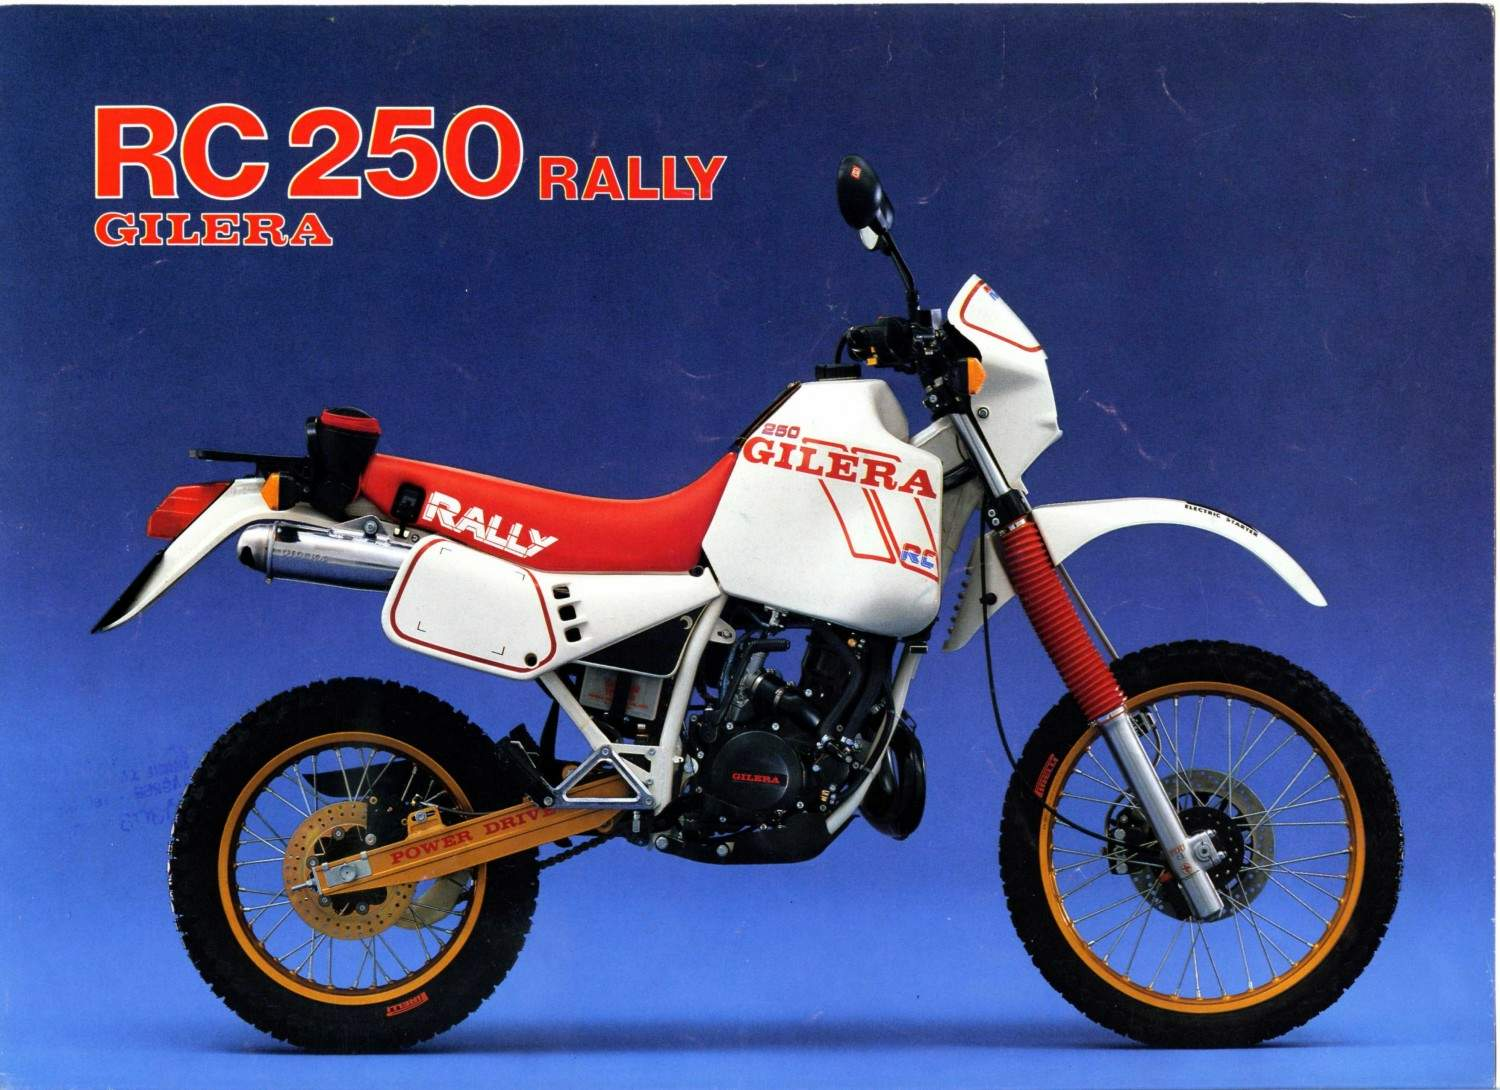 Gilera 350 Dakota 1987 images #158463